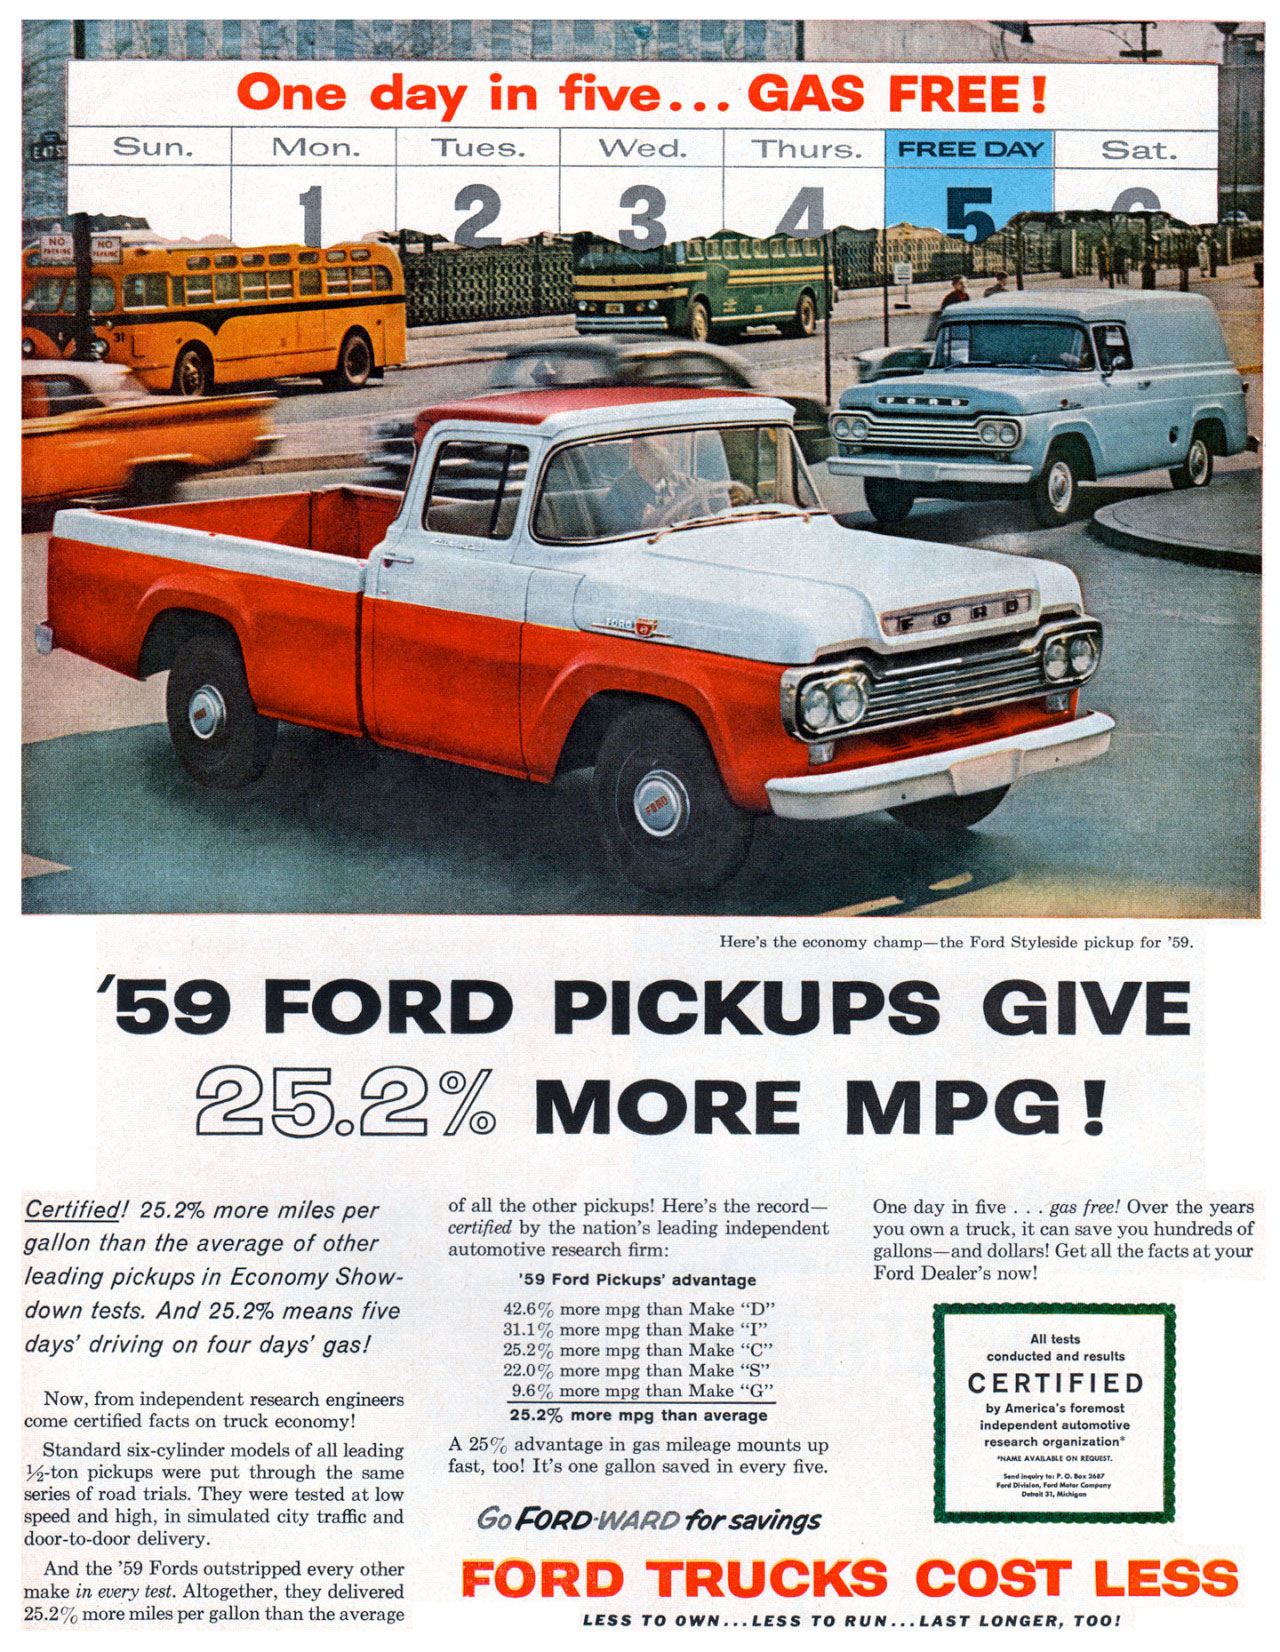 One day in five... GAS FREE!   Hem's the economy champ—the Ford Styleside pickup for '59.  '59 FORD PICKUPS GIVE RZacf© MORE MPG!  Certified! 25.2% more miles per gallon than the average of other leading pickups in Economy Show-down tests. And 25.2% means five days' driving on four days' gas!  Now, from independent research engineers come certified facts on truck economy! Standard six-cylinder models of all leading -ton pickups were put through the same series of road trials. They were tested at low speed and high, in simulated city traffic and door-to-door delivery. And the '59 Fords outstripped every other make in every test. Altogether, they delivered 25.2% more miles per gallon than the average  of all the other pickups! Here's the record—certified by the nation's leading independent automotive research firm: '59 Ford Pickups' advantage 42.6% more mpg than Make ''D'' 31.1% more mpg than Make ''I'' 25.2% more mpg than Make ''C'' 22.0% mom mpg than Make ''0'' 9.6% mom mpg than Make ''G''  25.2% more mpg than average A 25';', advantage in gas mileage mounts up fast, too! It's one gallon saved in every five.  Go FORD-WARD for savings  One day in five . . . gas free! Over the years you own a truck, it can save you hundreds of gallons—and dollars! Get all the facts at your Ford Dealer's now!  All tests conducted and results  CERTIFIED  by America's foremost independent automotive research organization. as nova,  FORD TRUCKS COST LESS  LESS TO OWN...LESS TO RUN...LAST LONGER, TOO,